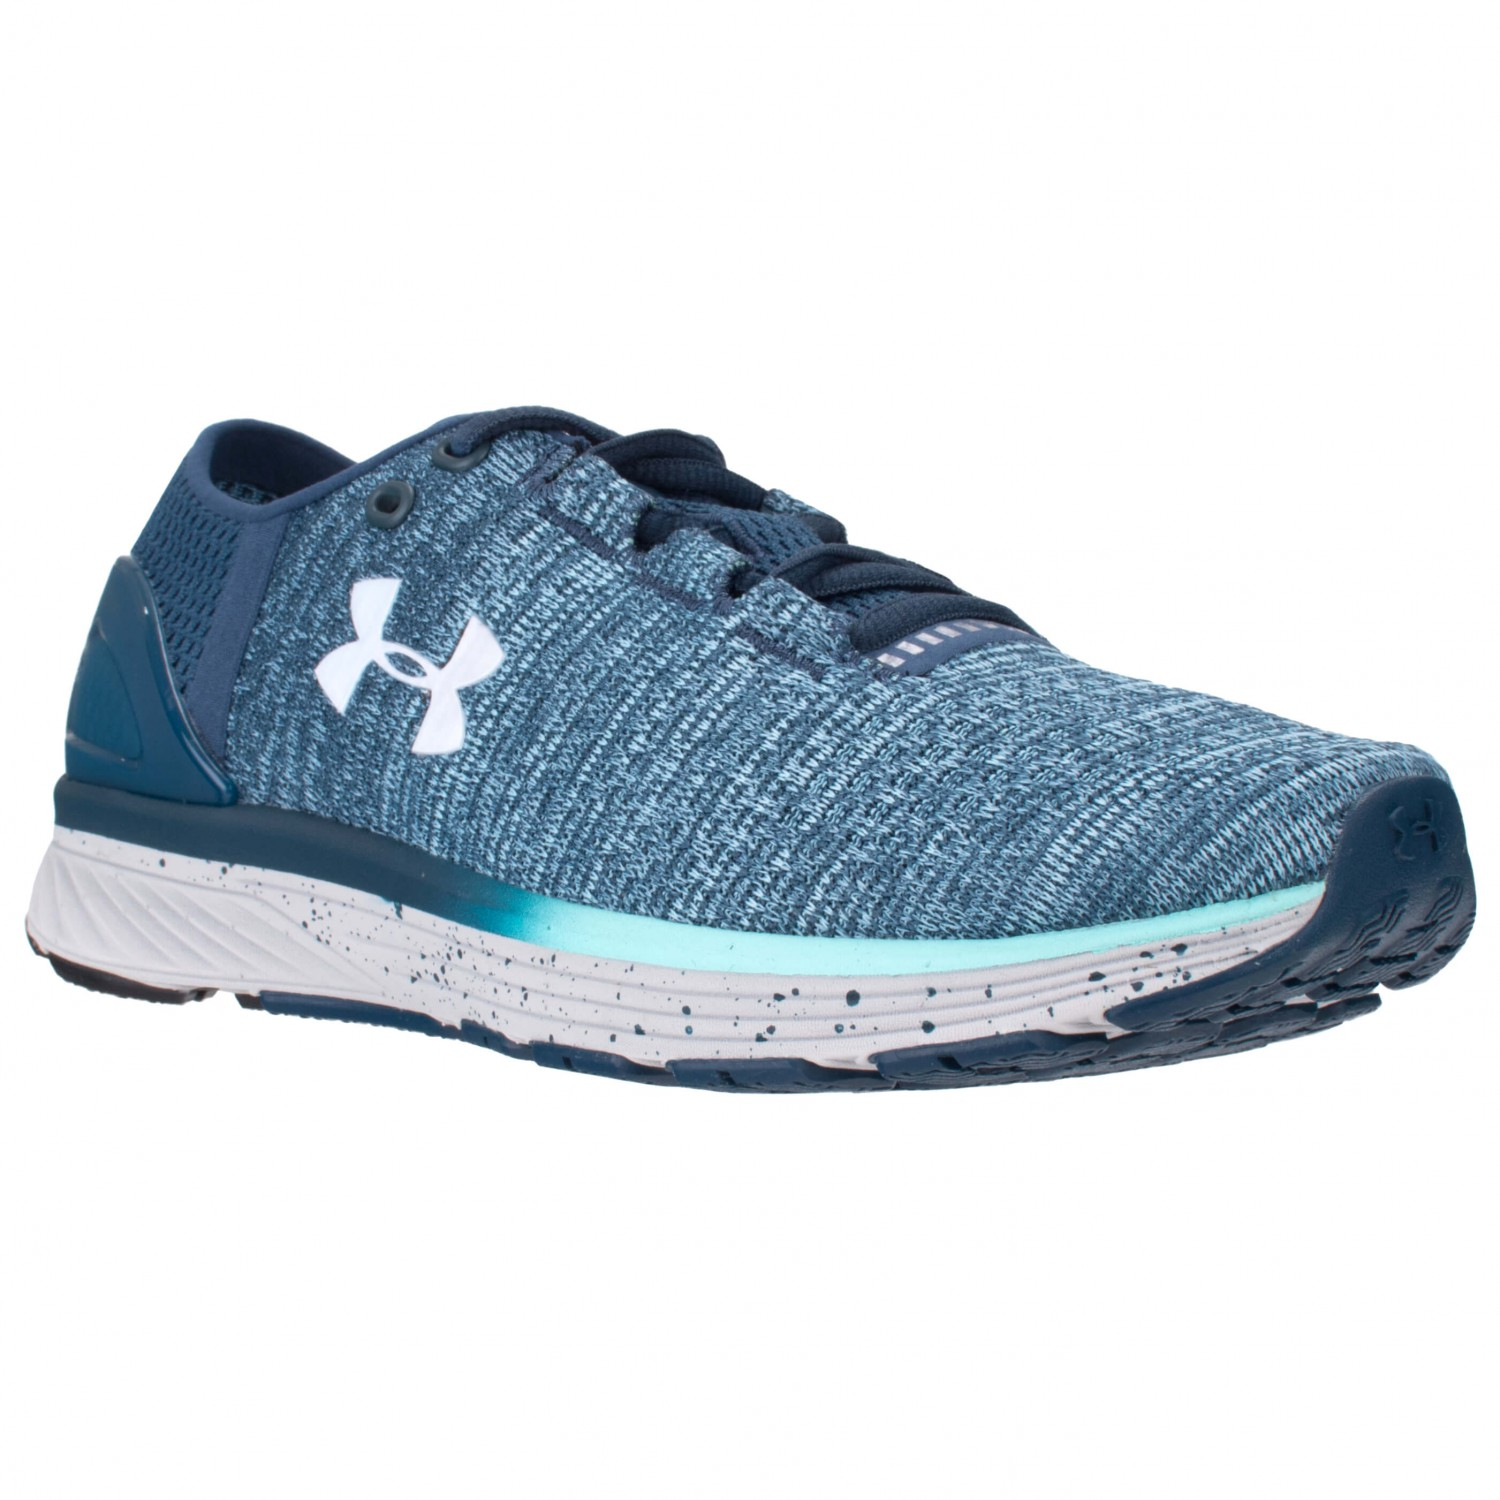 Under Armour - Women's Charged Bandit 3 - Runningschuhe True Ink / Blue Infinity / White